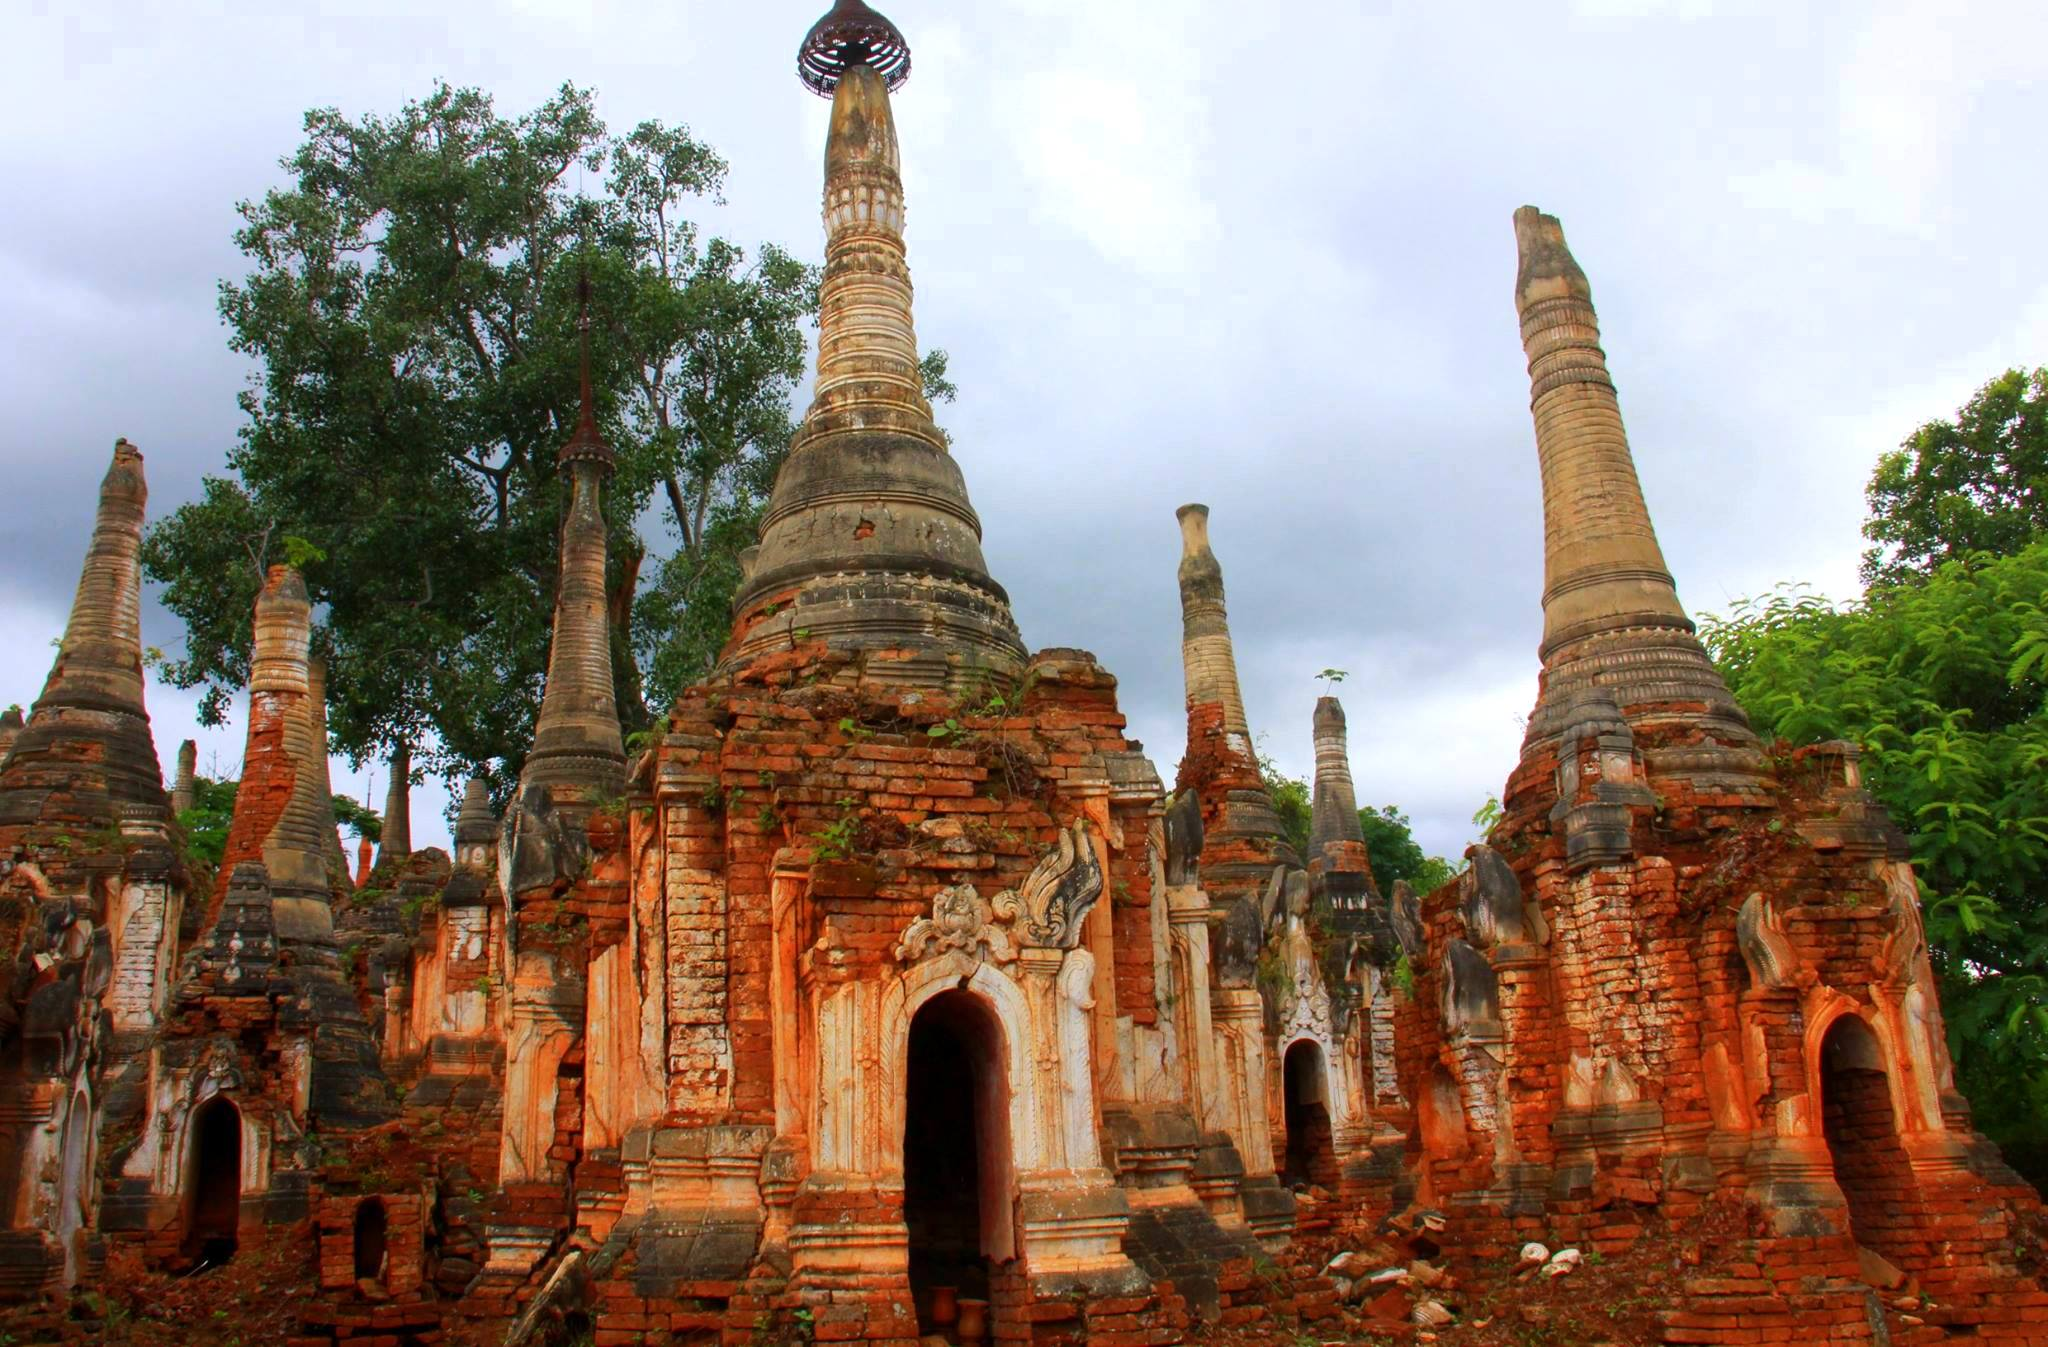 Old and ancient pagodas of Indein are a must visit